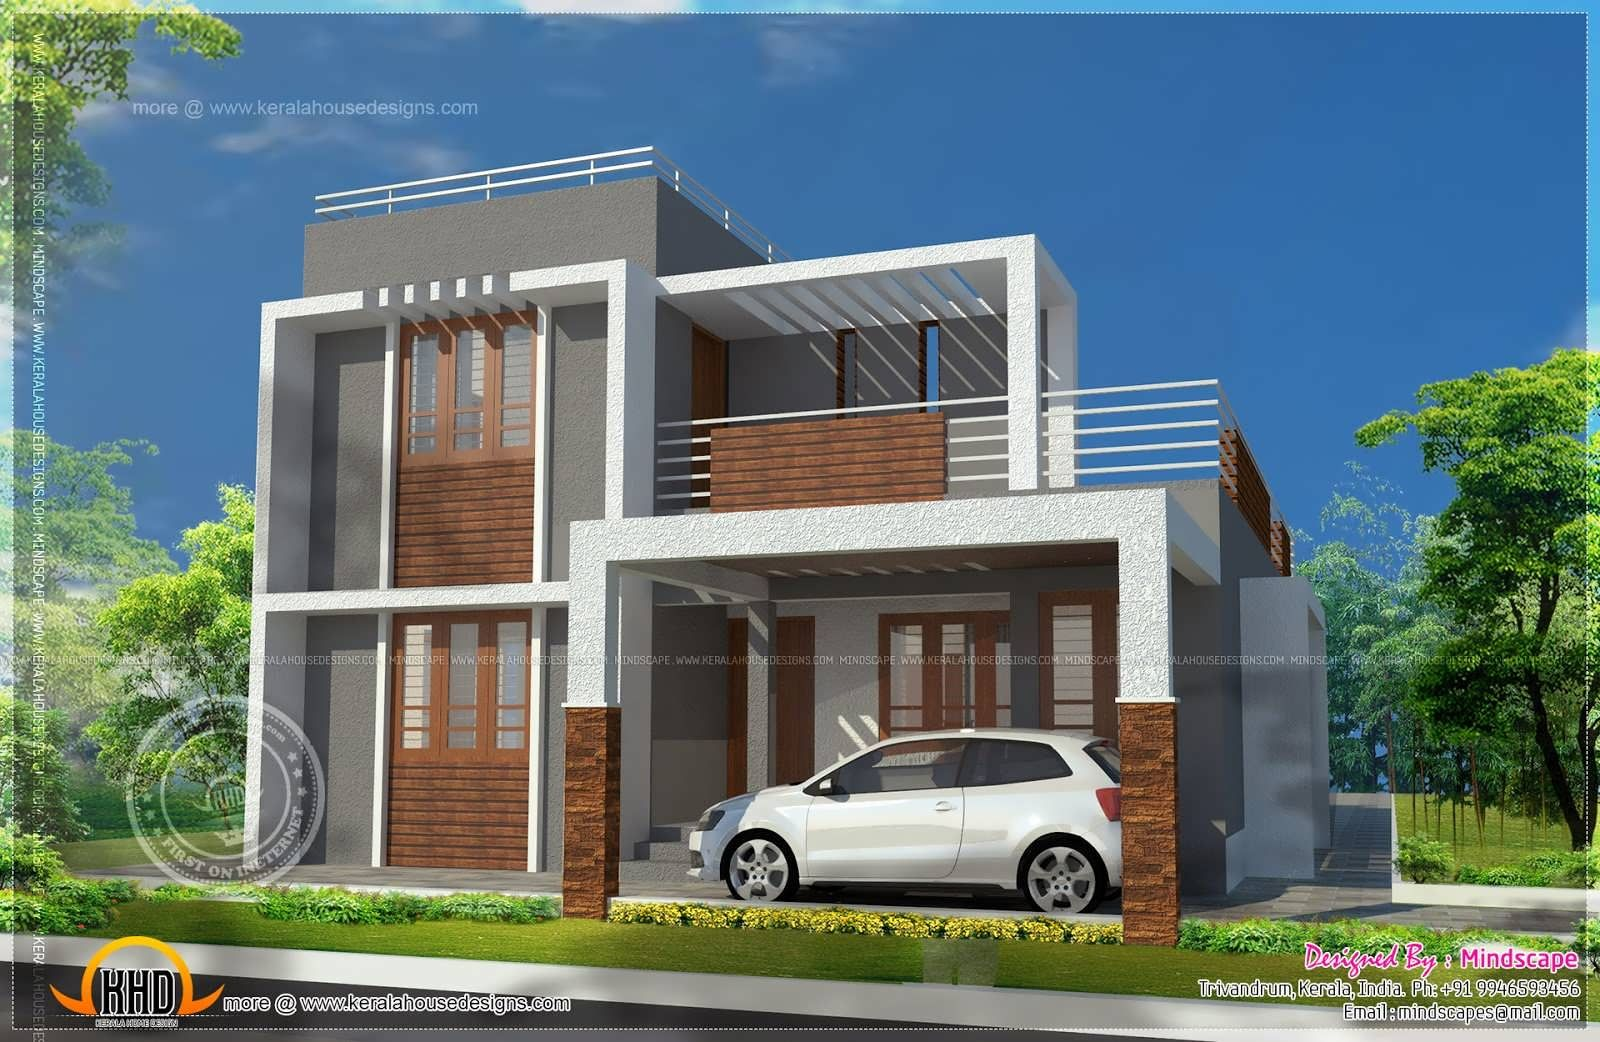 Small Indian House Plans Modern Flat Roof Design Affordable House Plans Contemporary House Plans